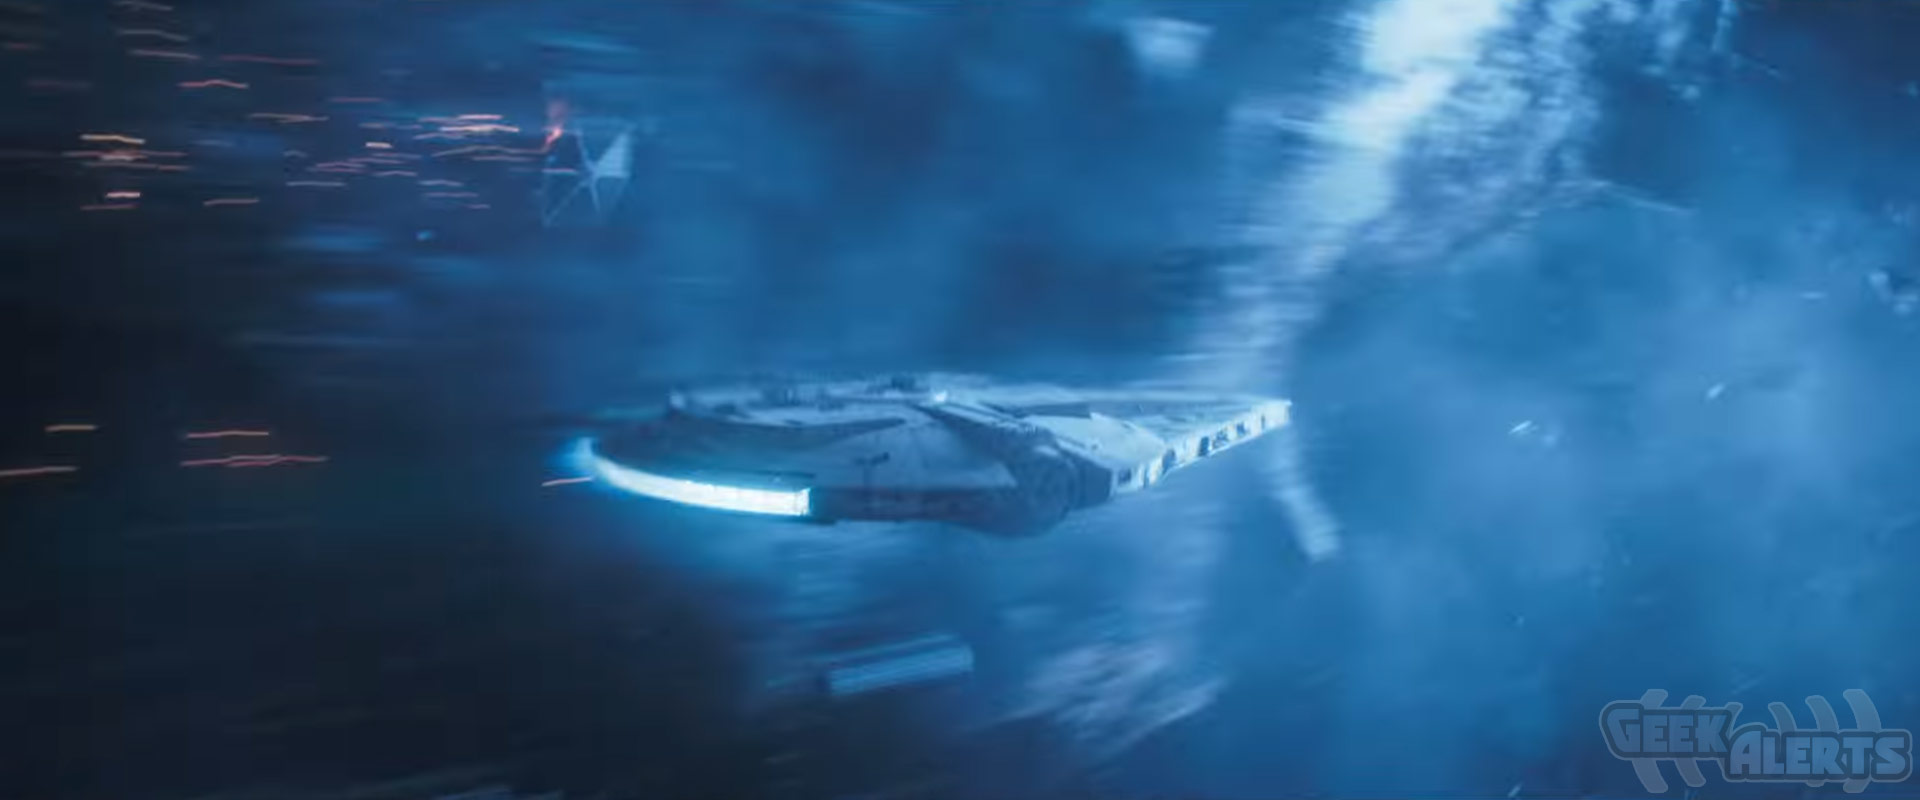 Solo: A Star Wars Story Official Teaser Trailer - photo#48